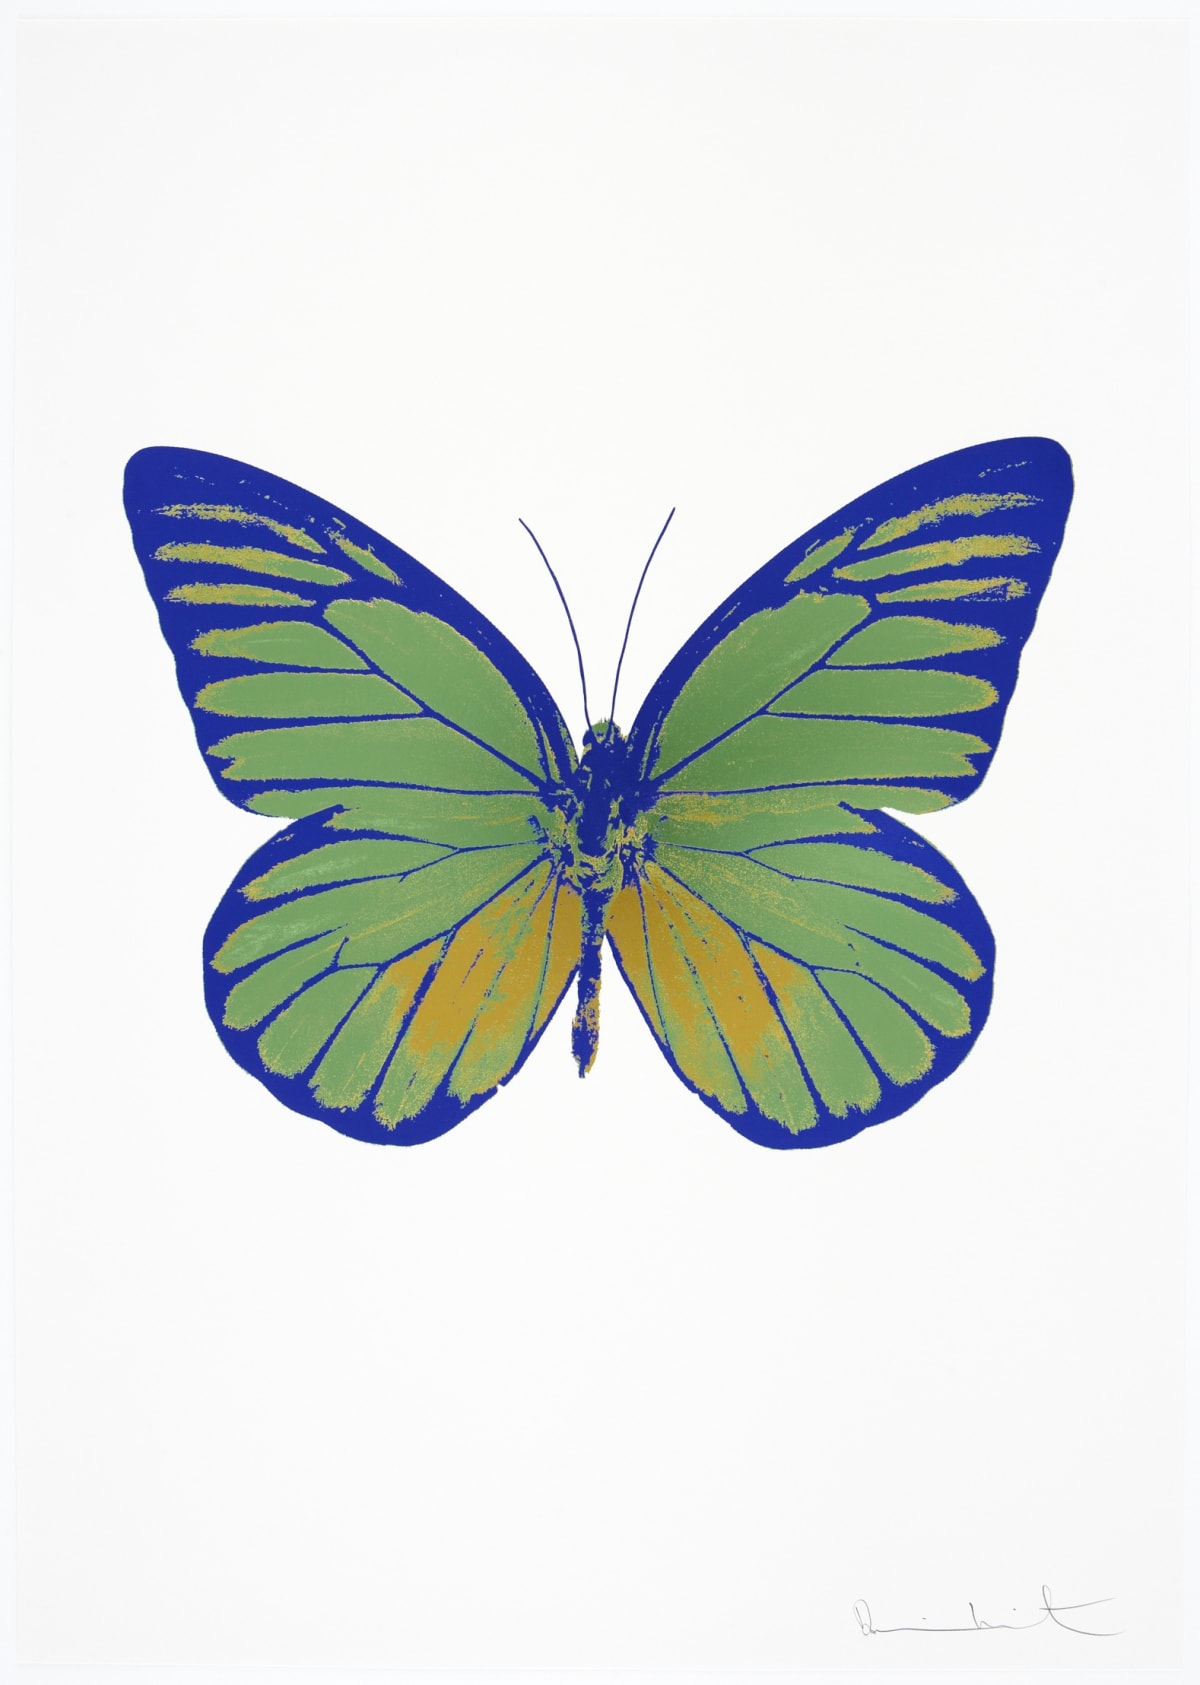 Damien Hirst The Souls I - Leaf Green/Oriental Gold/Westminster Blue, 2010 3 colour foil block on 300gsm Arches 88 archival paper. Signed and numbered. Published by Paul Stolper and Other Criteria 72 x 51cm OC7753 / 659-16 Edition of 15